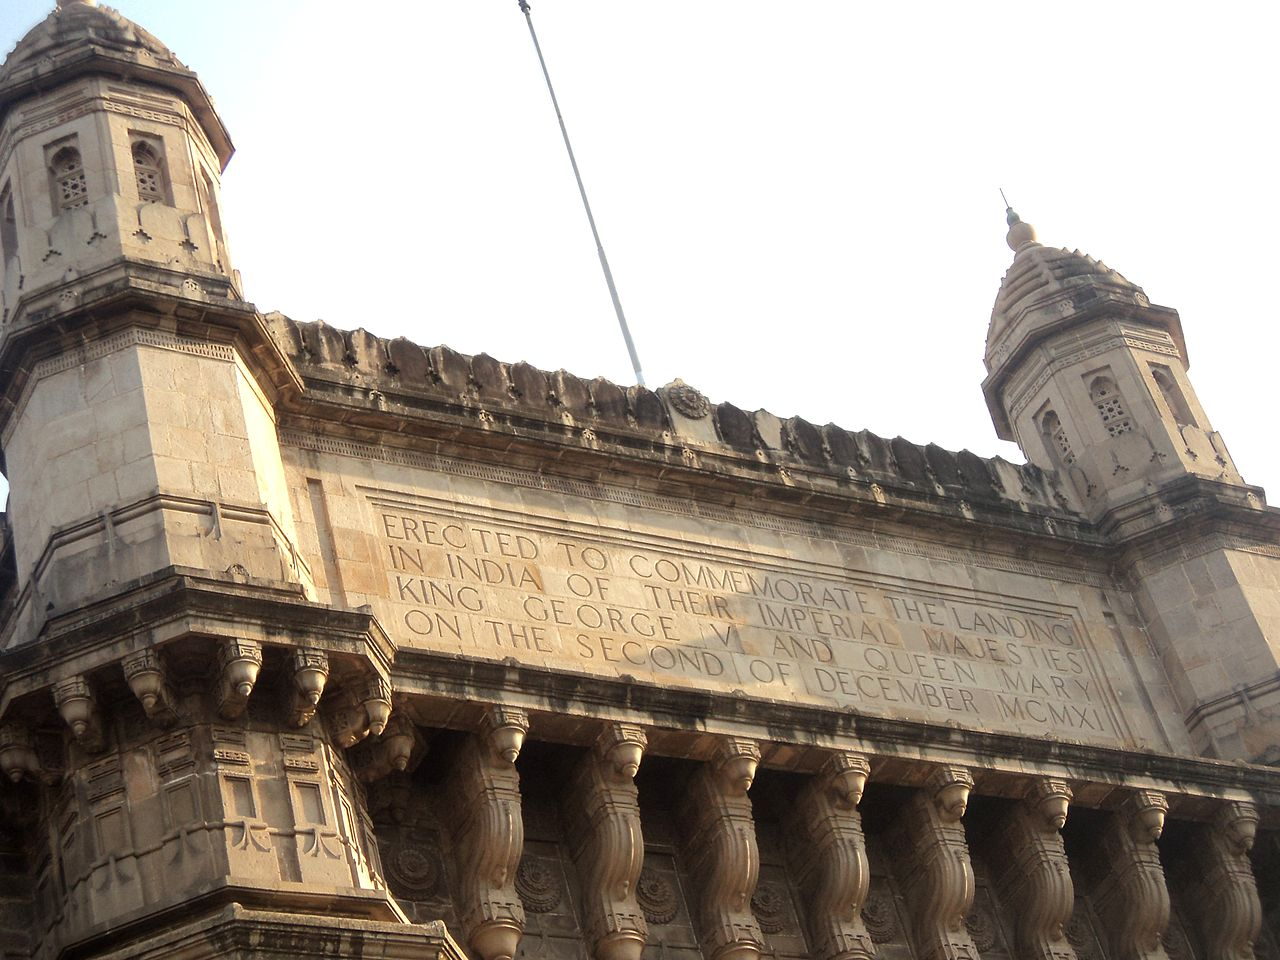 gateway of india from wikipedia Qpay india offers the best online payment gateway, merchant account services,  credit card processing your complete payment service provider in india.